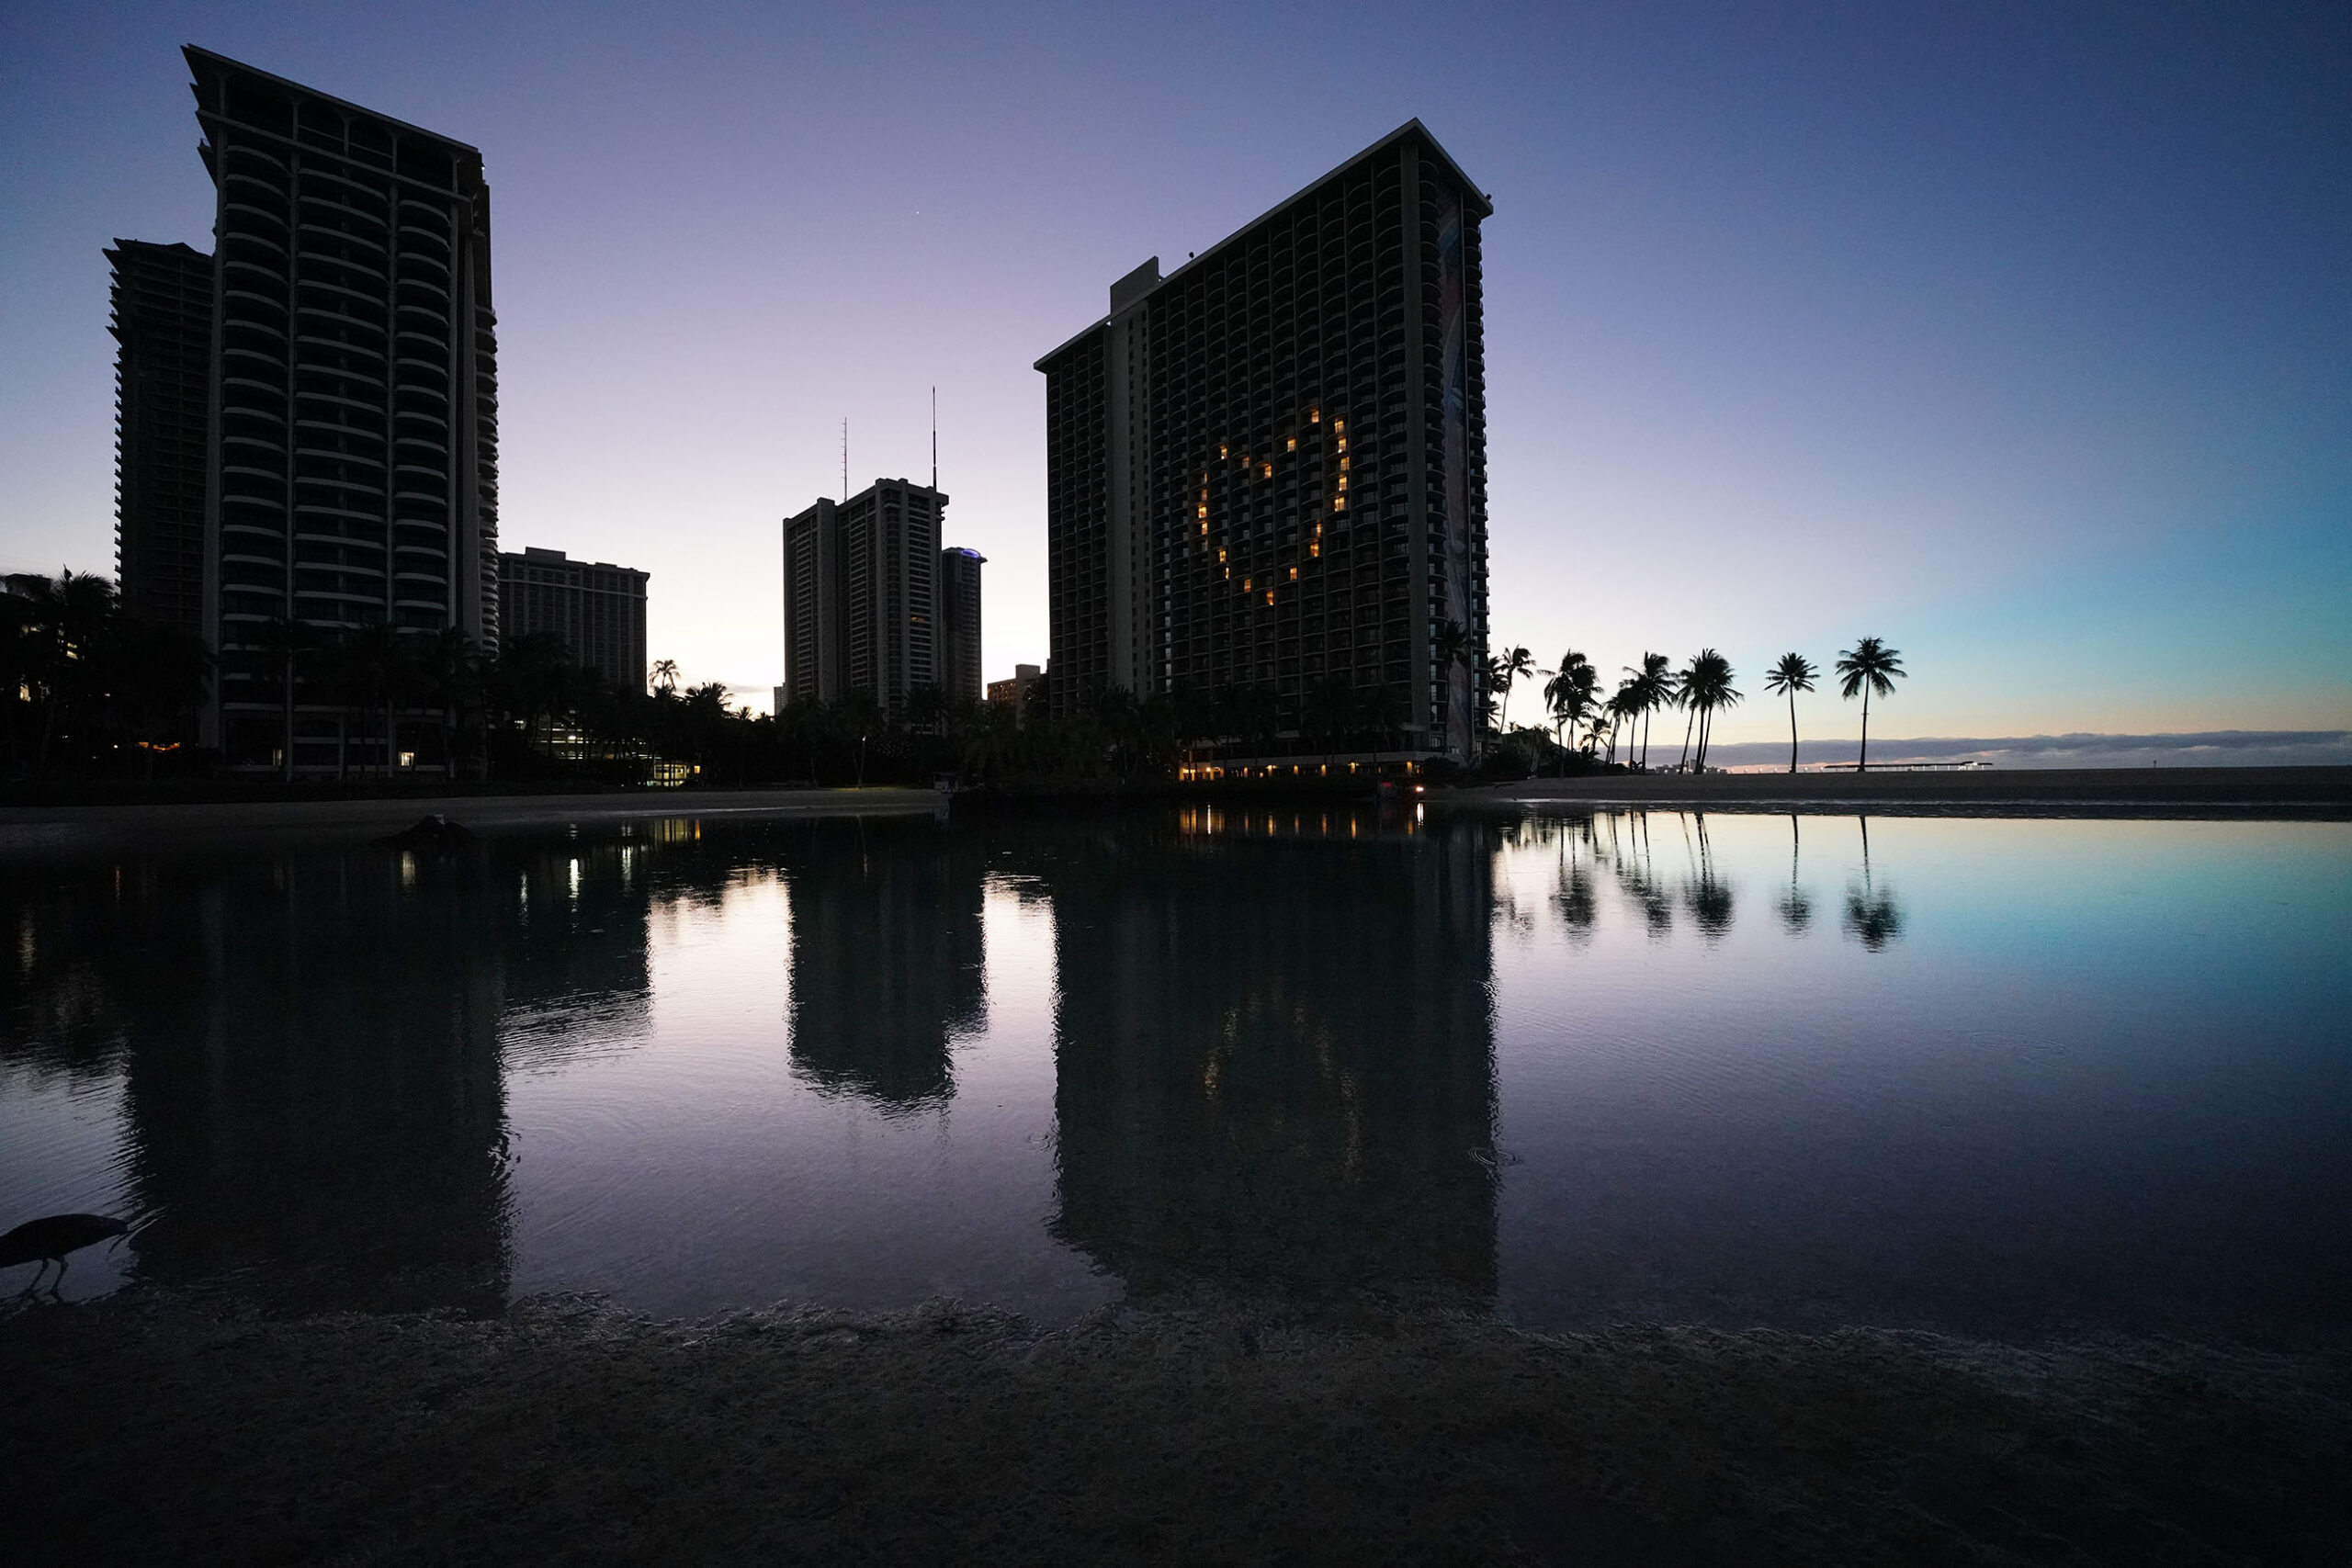 <p>Tourism screeched to a halt. The Hilton Hawaiian Village lit up empty hotel rooms in the shape of a heart. The Waikiki property finally reopened in December after being closed for eight months.</p>